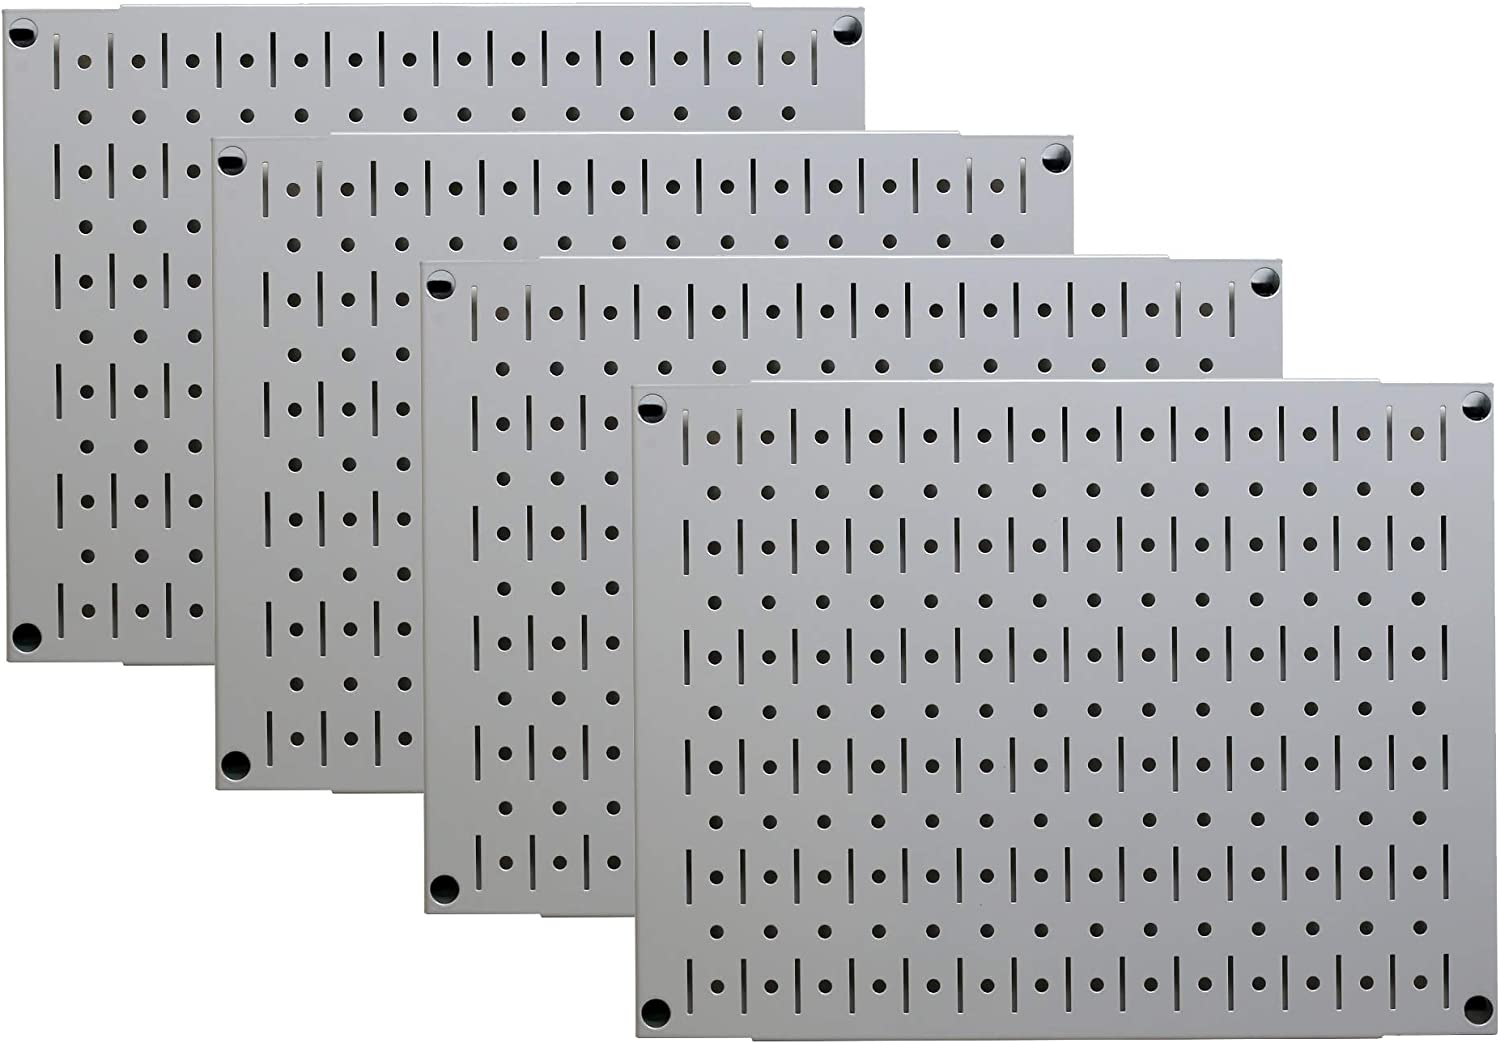 Pegboard Wall Organizer Tiles - Wall Control Modular Grey Metal Pegboard Tiling Set - (4) 12-in Tall x 16-in Wide Gray Peg Board Panel Wall Storage Tiles - Easy to Install (Grey)